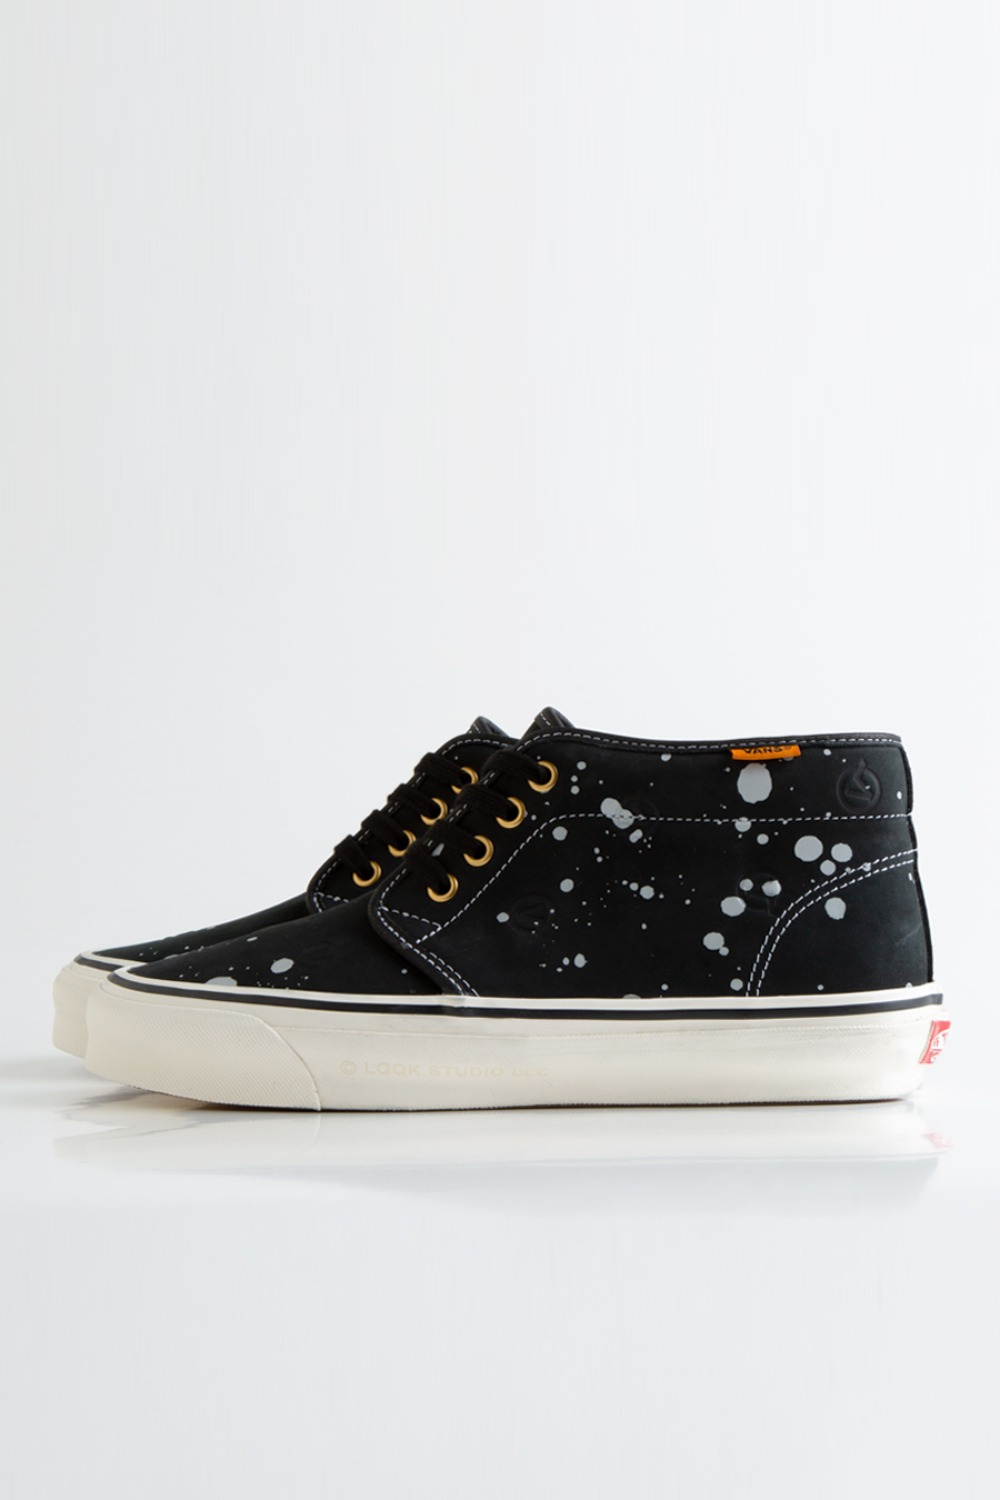 OG Chukka Boot LX(LQQK STUDIO) circle V/splatter black